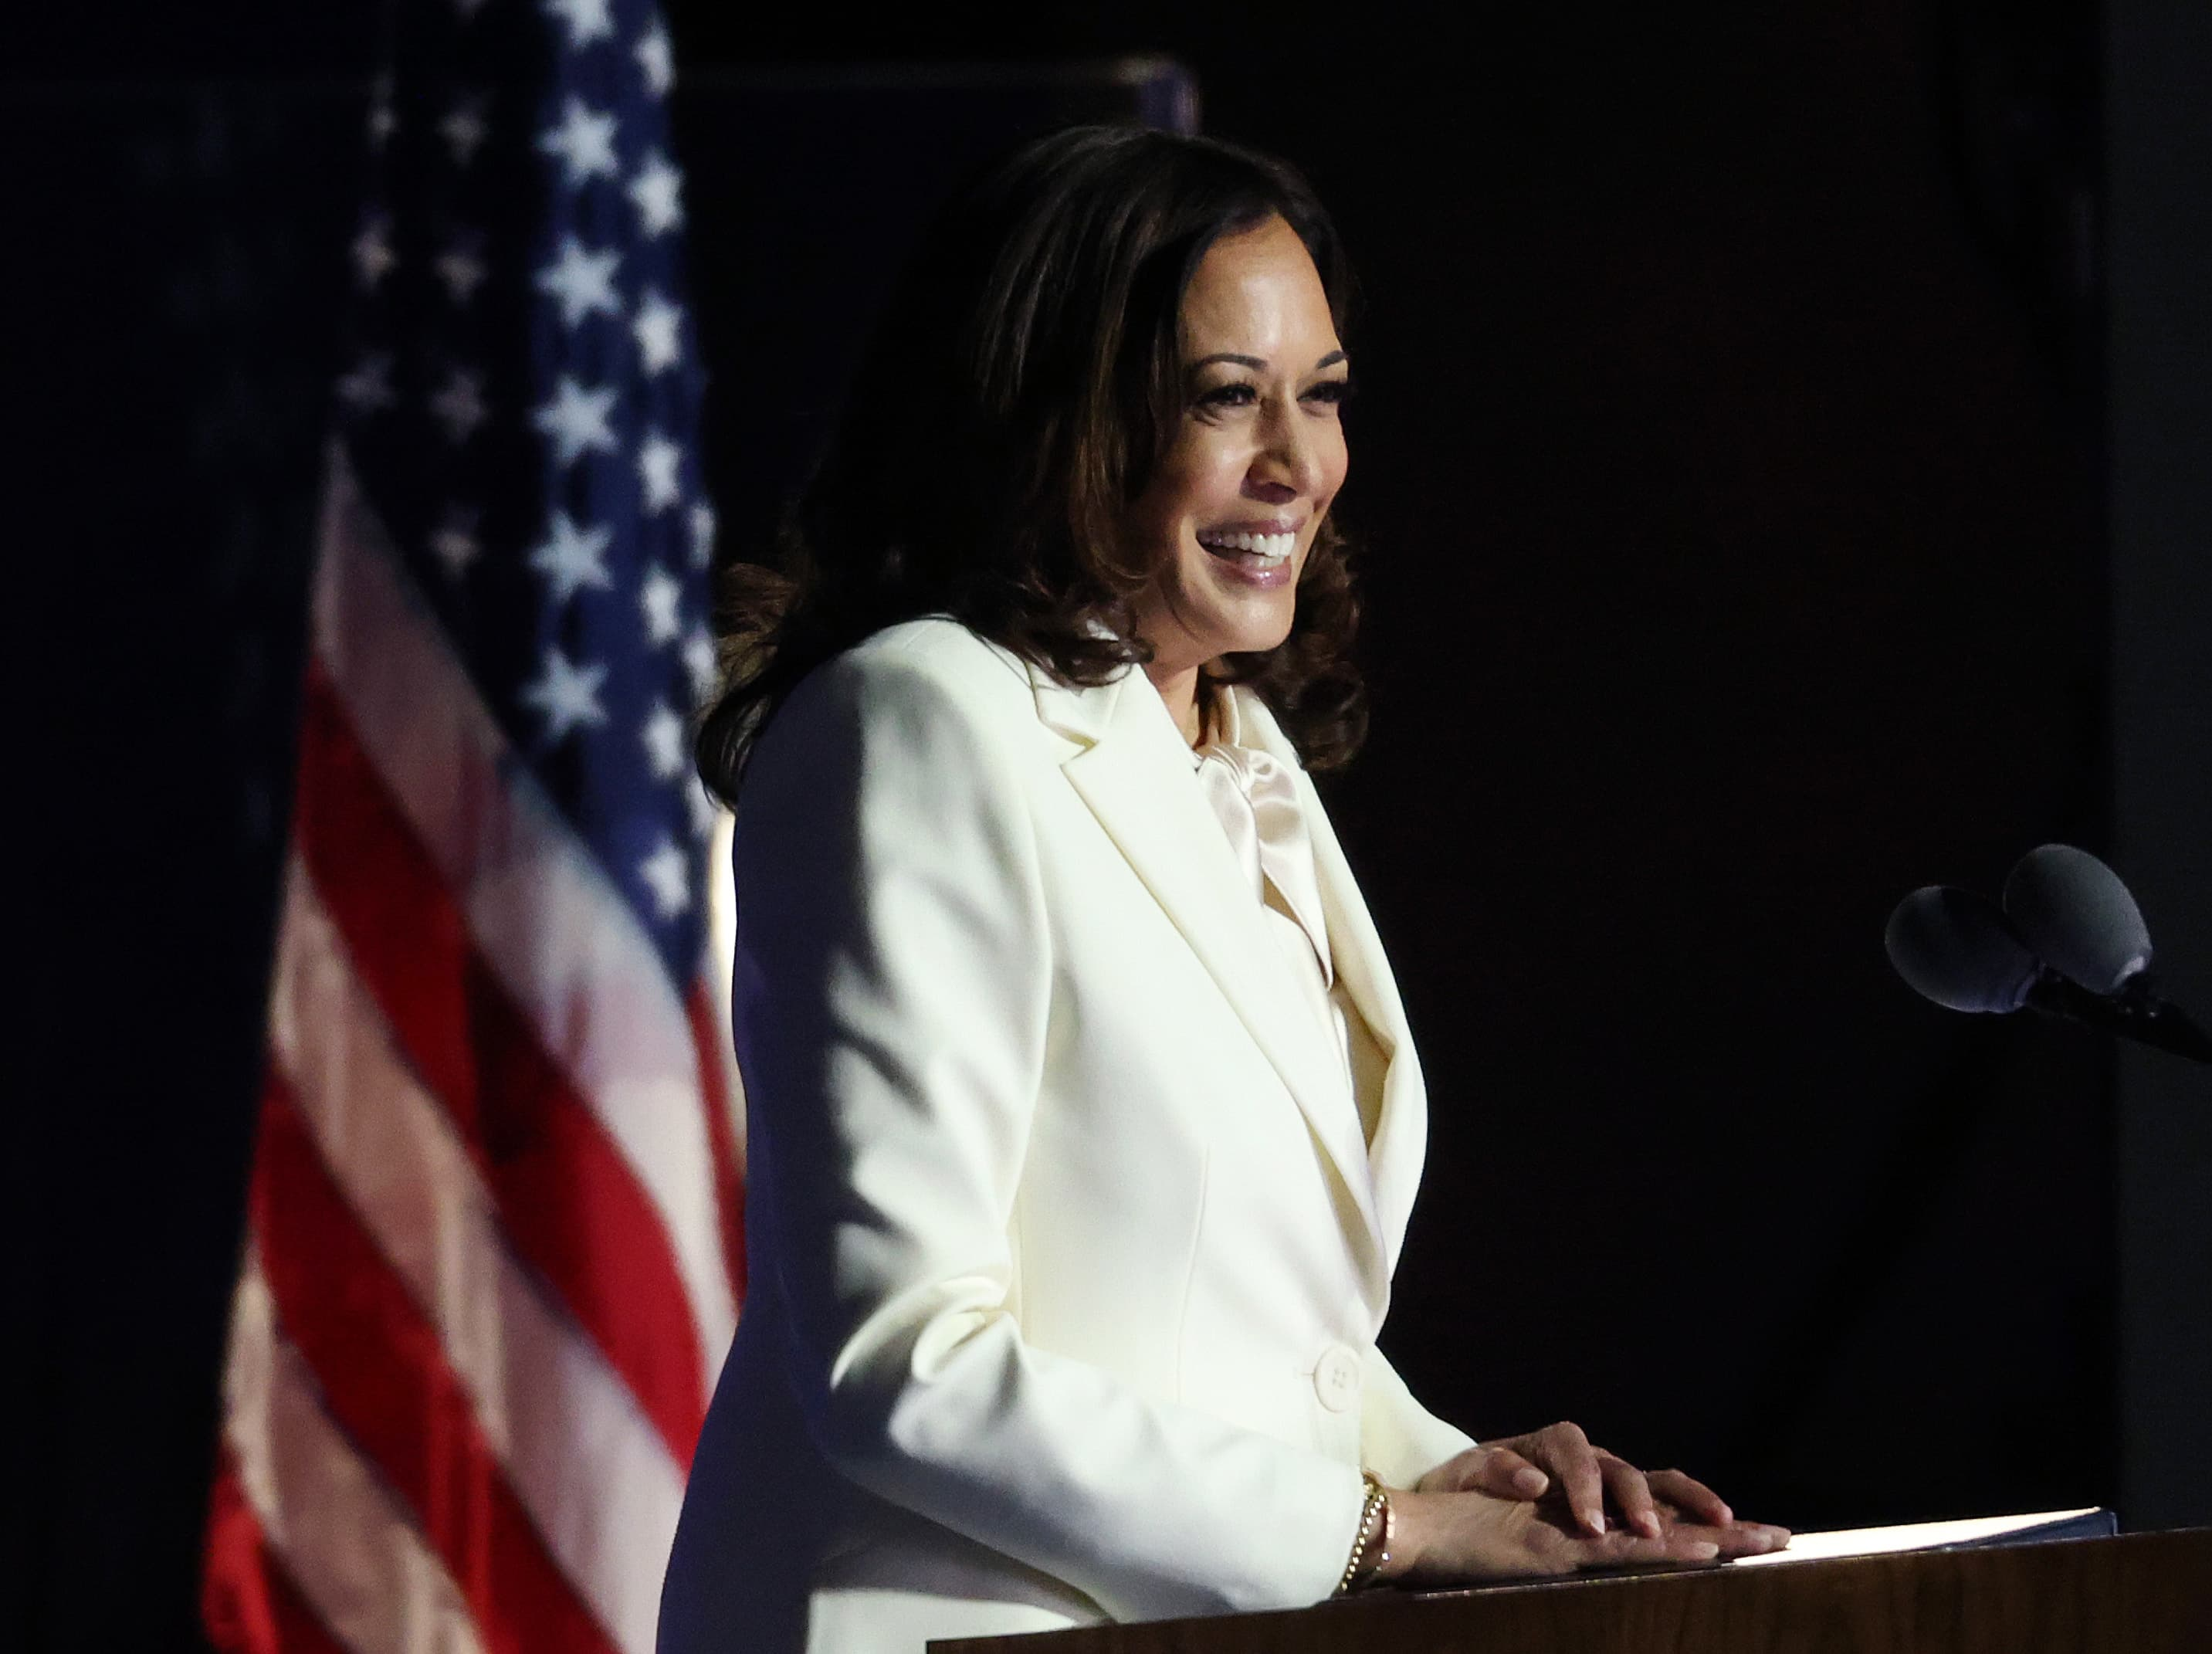 Kamala Harris Makes History As First Woman Elected Vice President